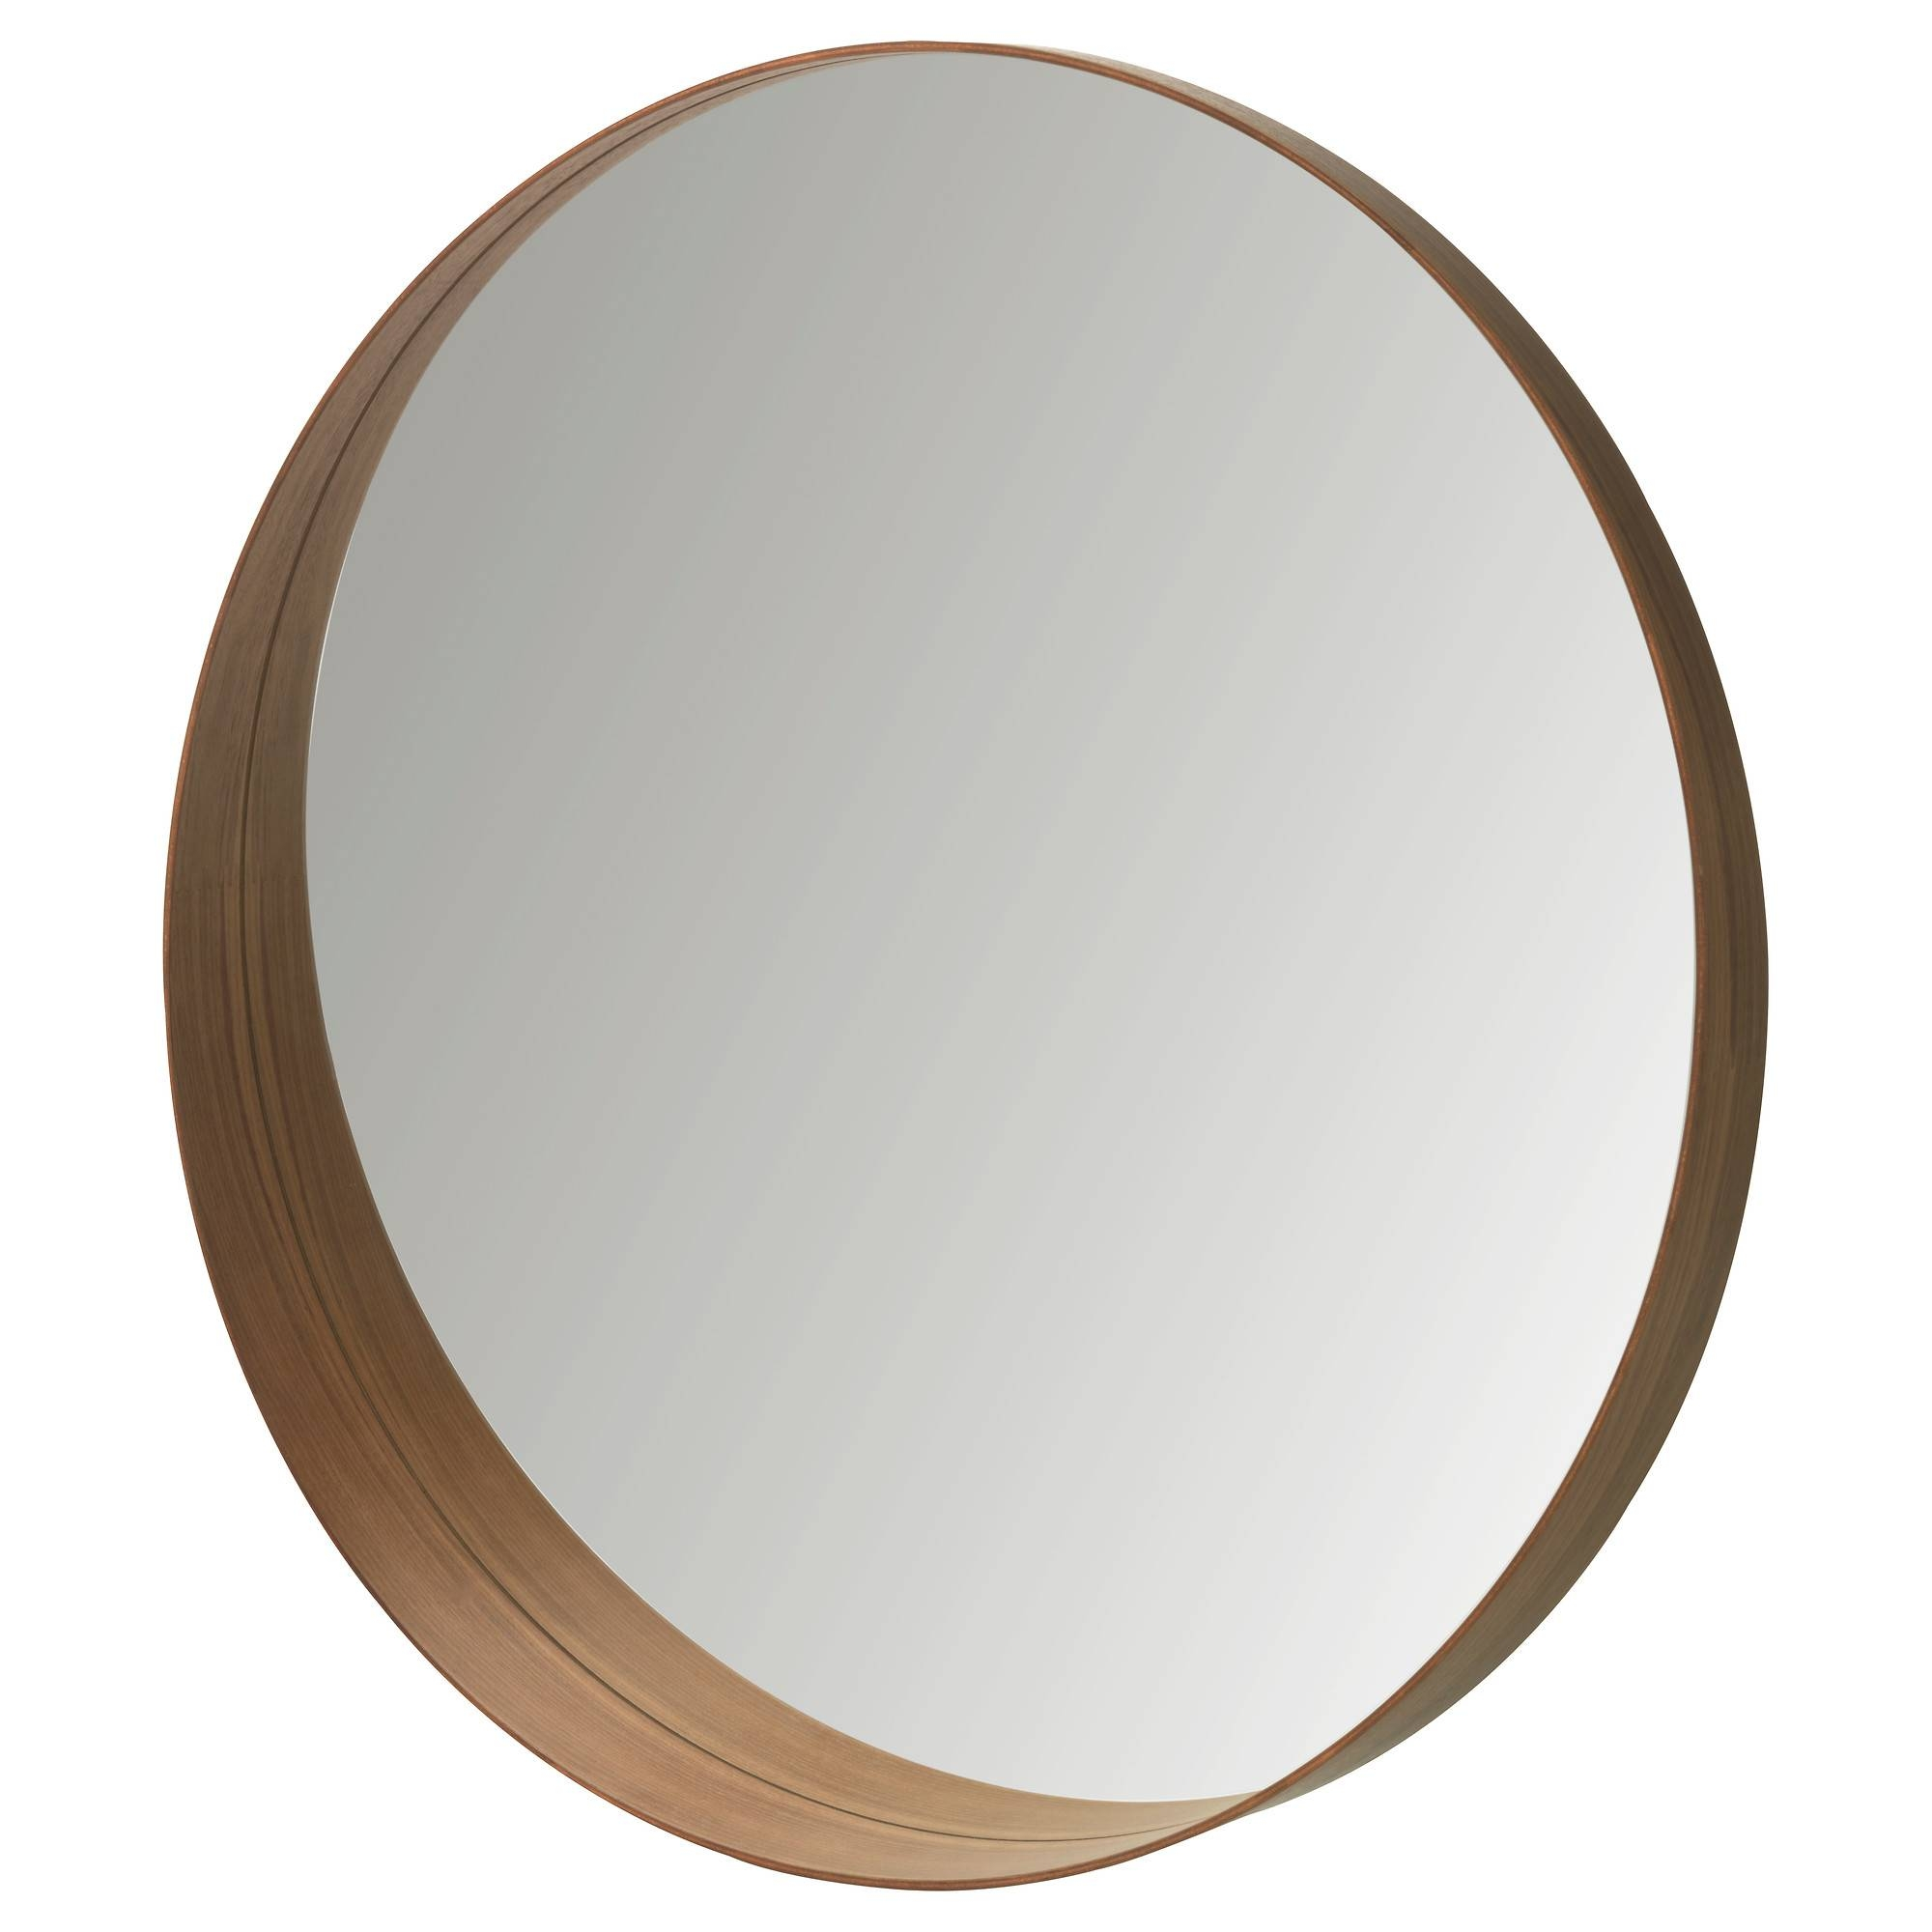 Stockholm Mirror – Ikea With Regard To Large Circular Mirrors (View 24 of 25)